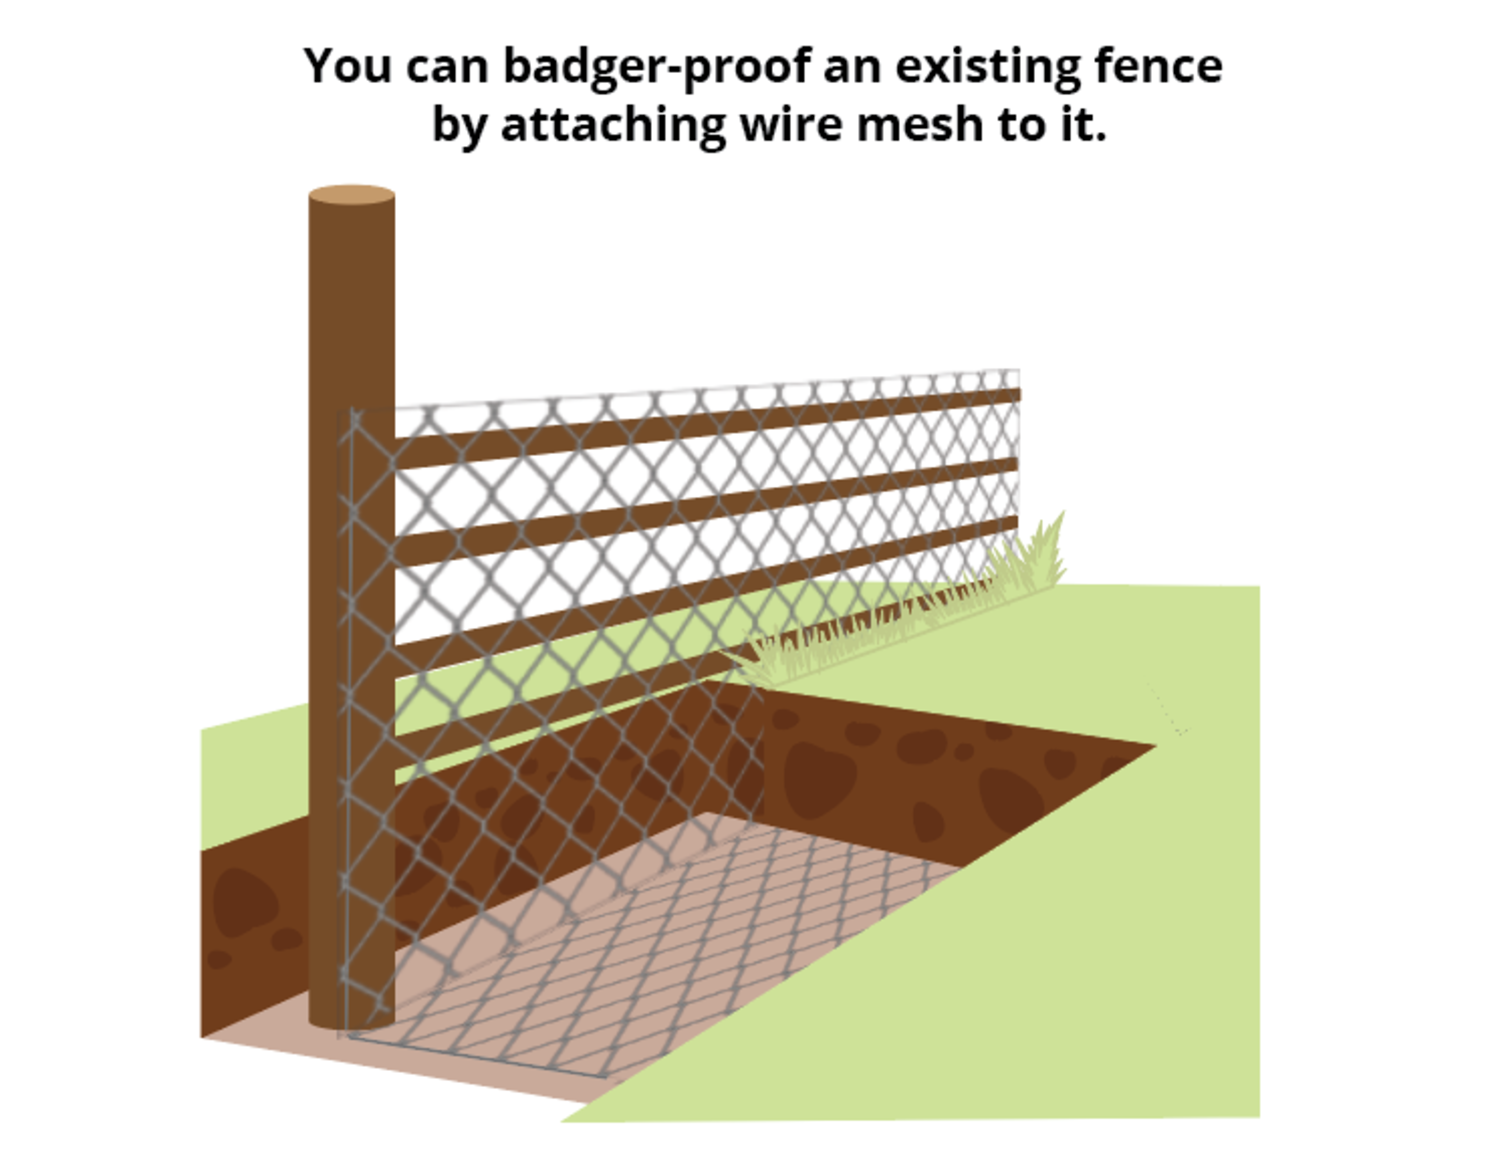 badger-proofing-existing-fence